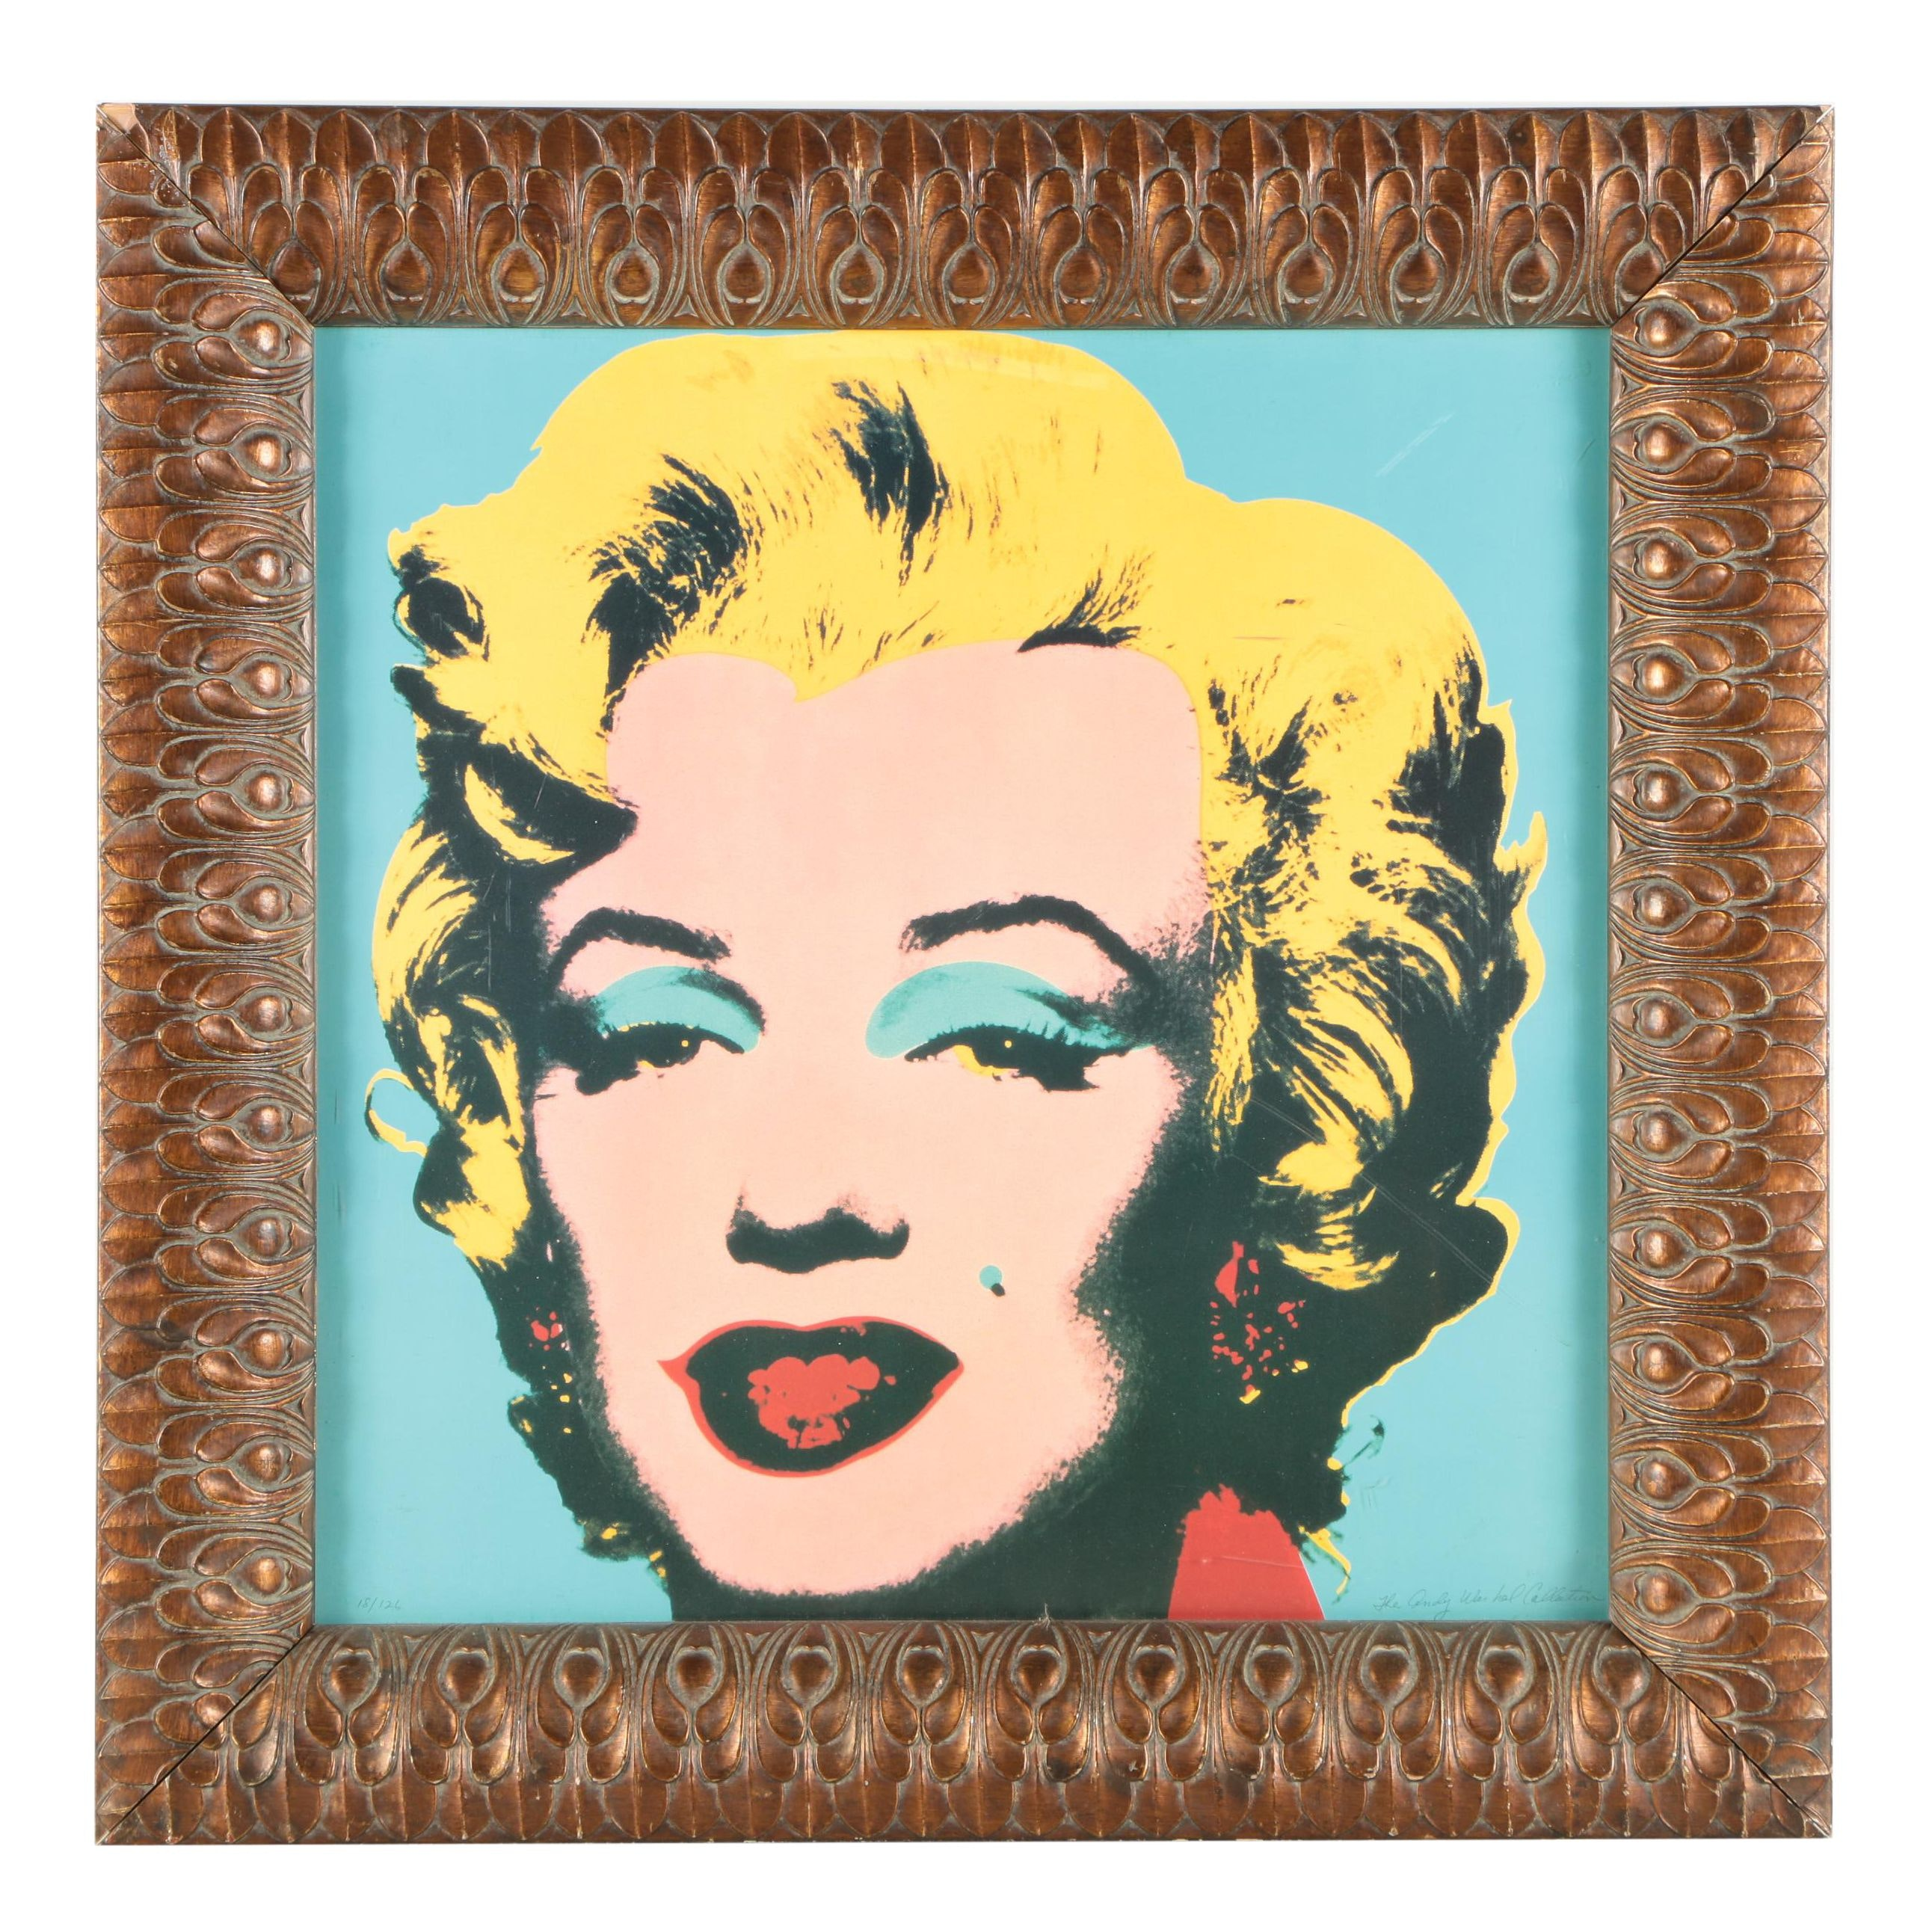 "Limited Edition Offset Lithograph After Andy Warhol's ""Marilyn Monroe"""